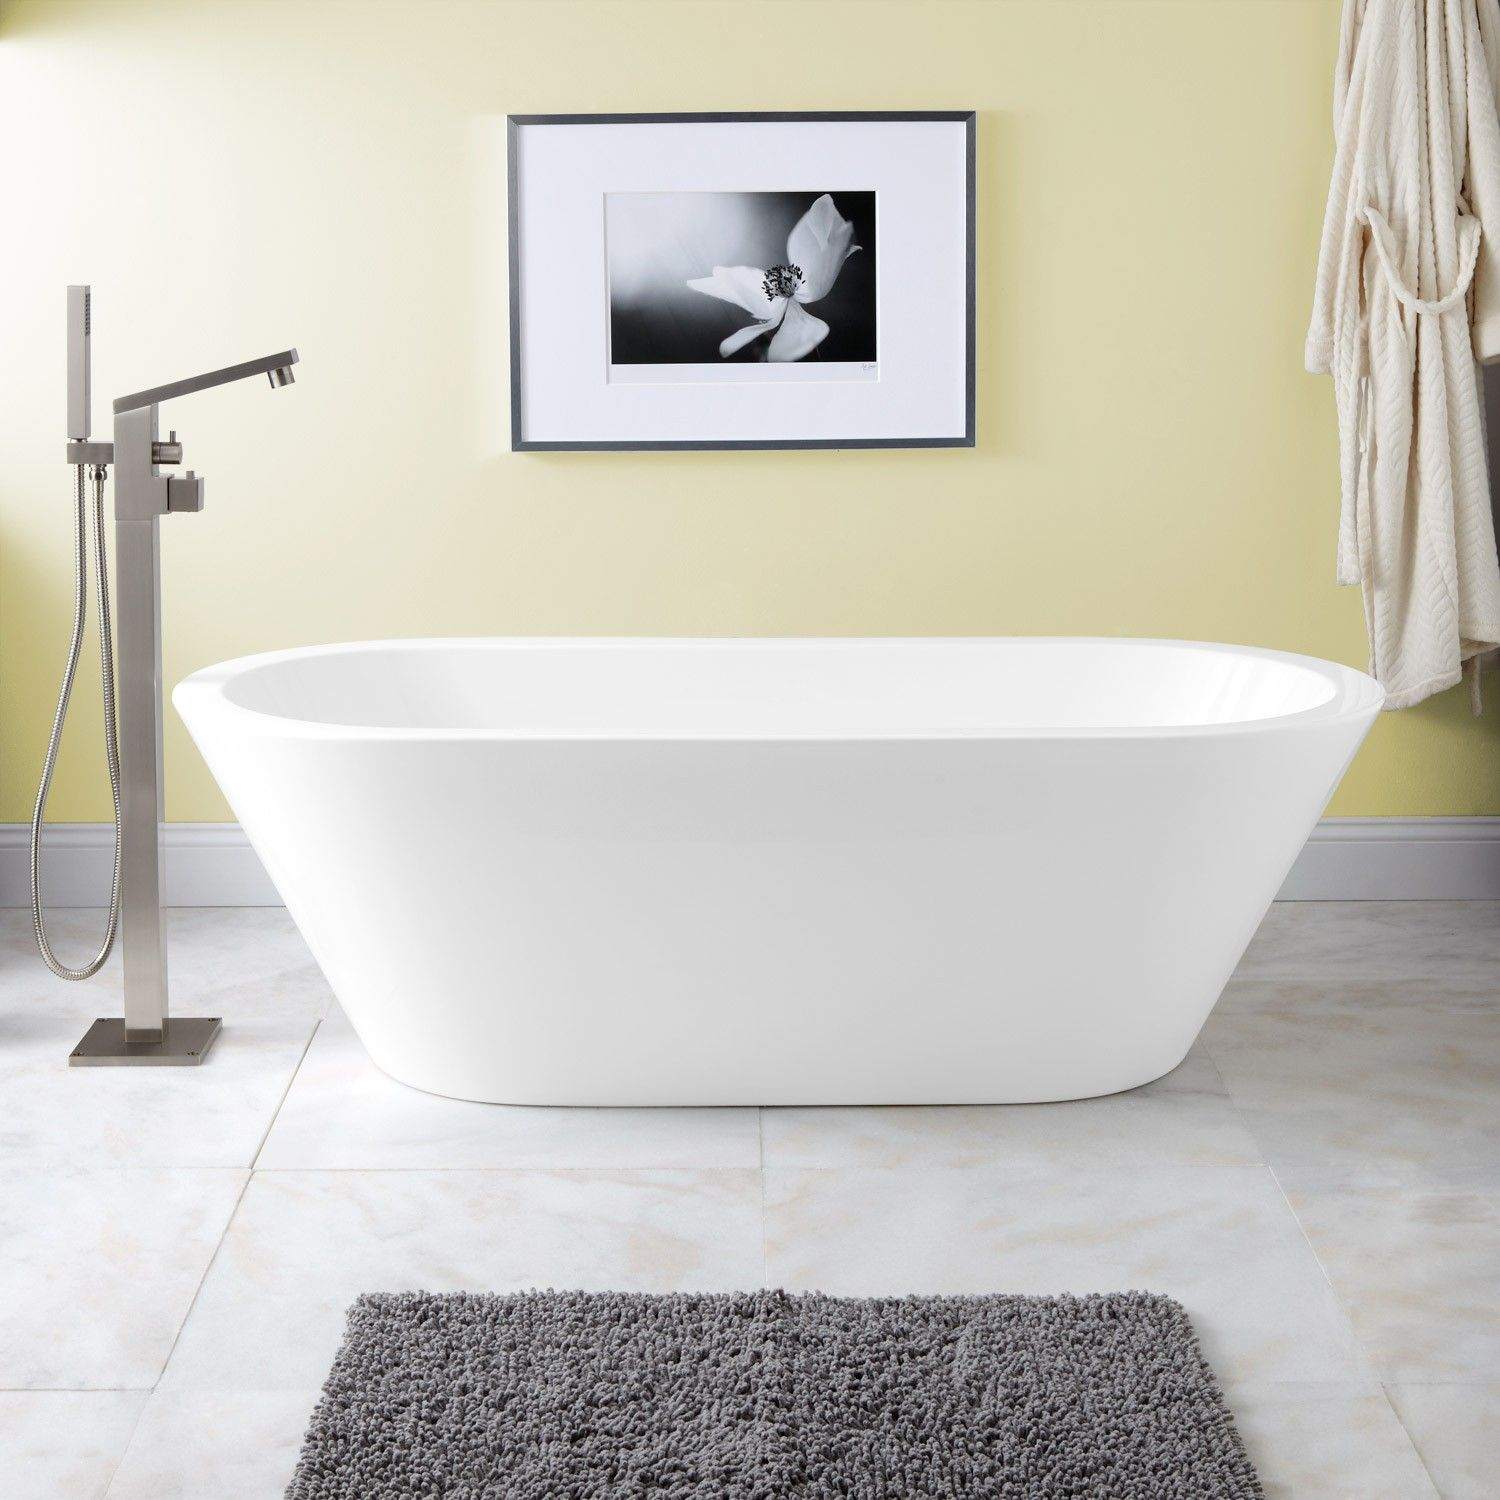 Collette Acrylic Freestanding Tub | Freestanding tub, Tubs and Bath